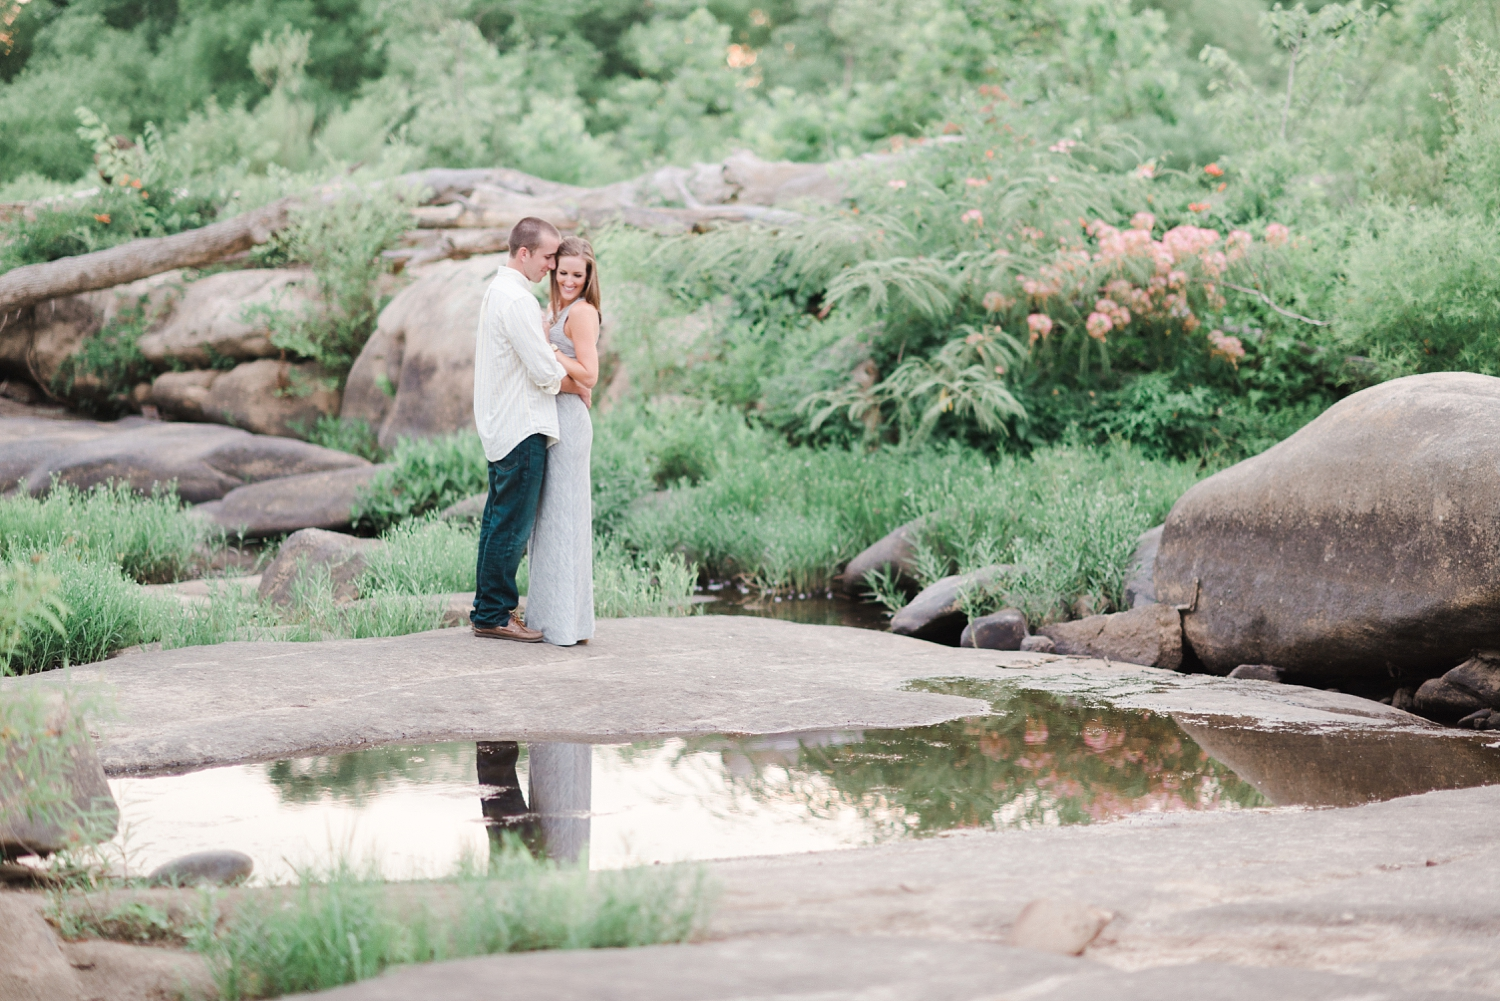 Maymon_Park_richmond_engagement_photography_0027.jpg